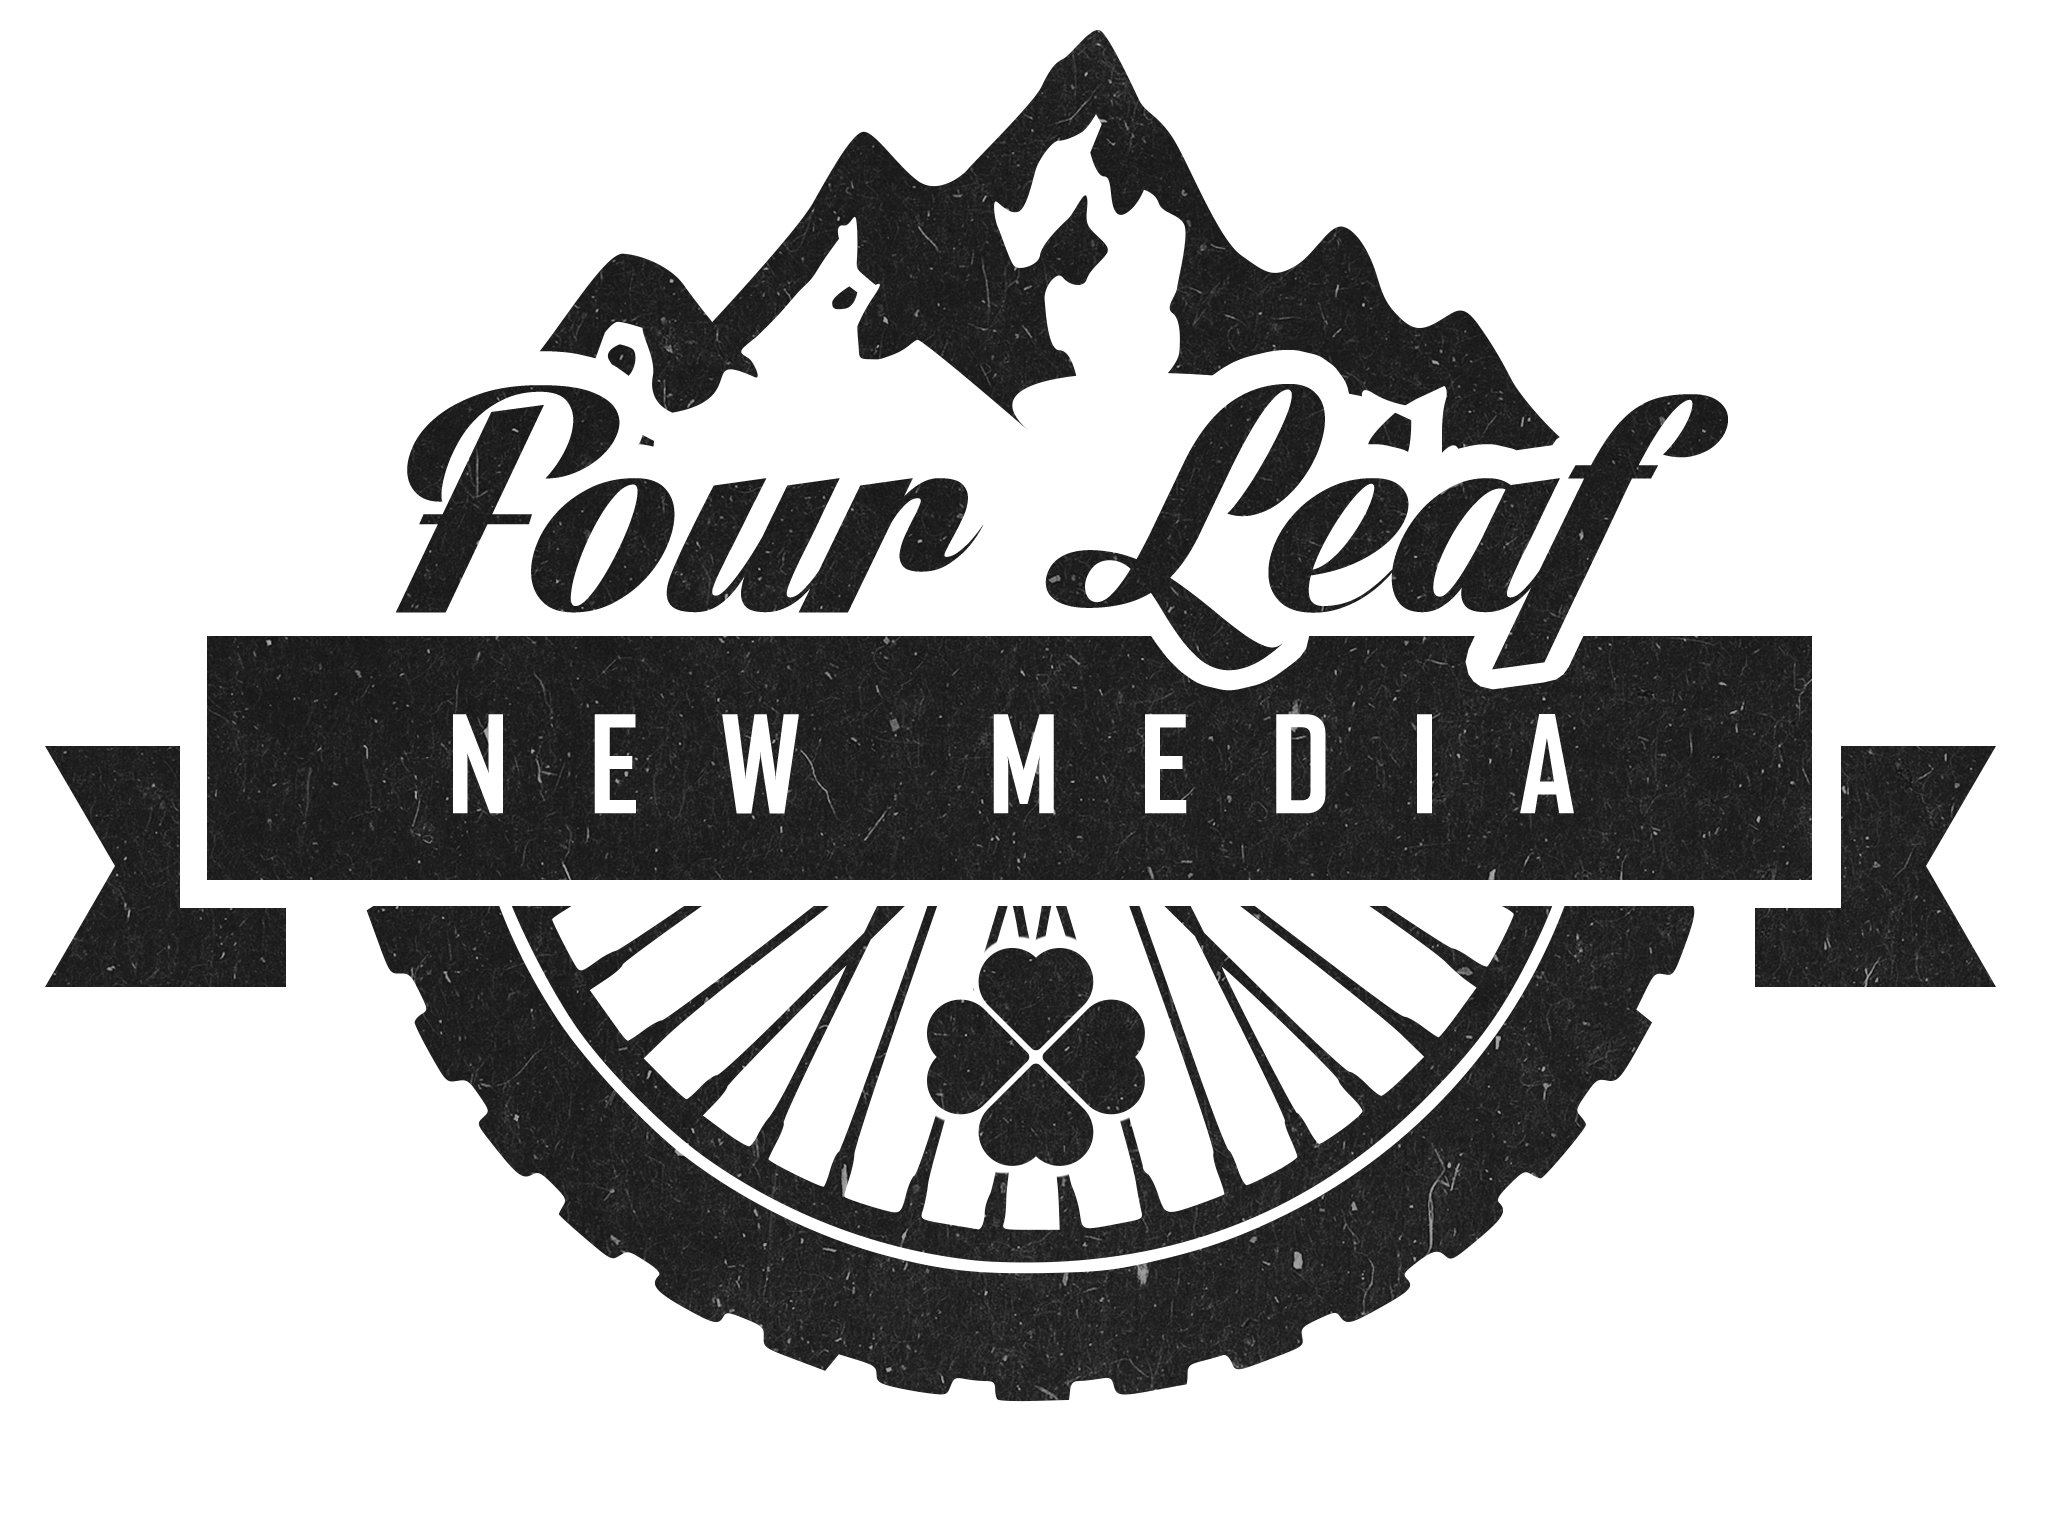 Four Leaf New Media